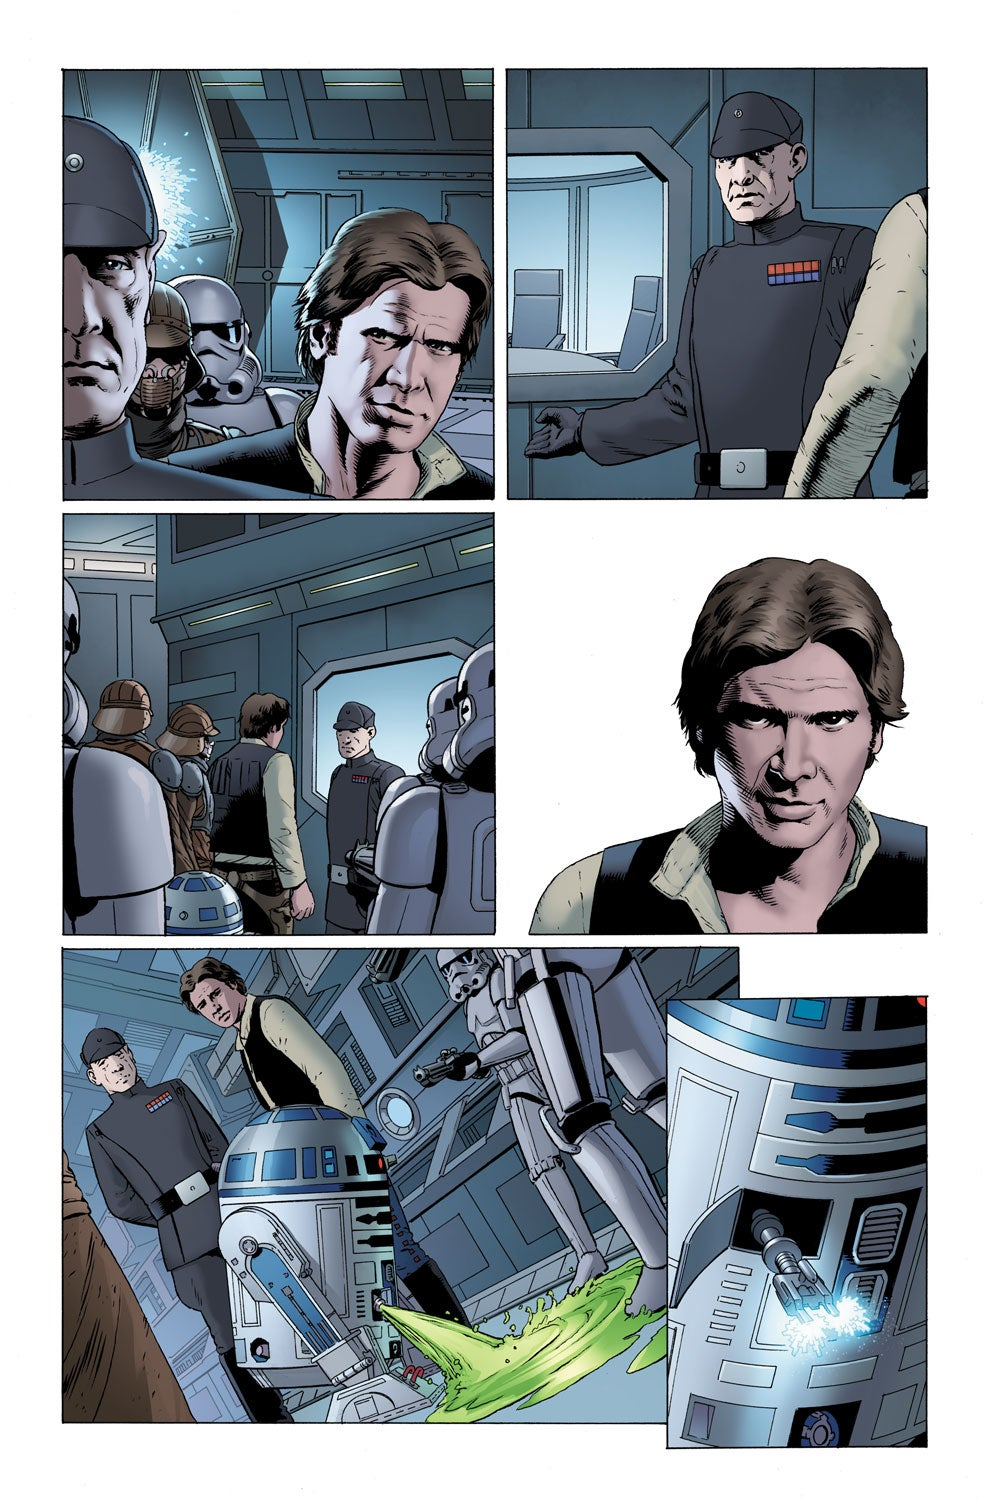 Star Wars Comics Are Getting Better